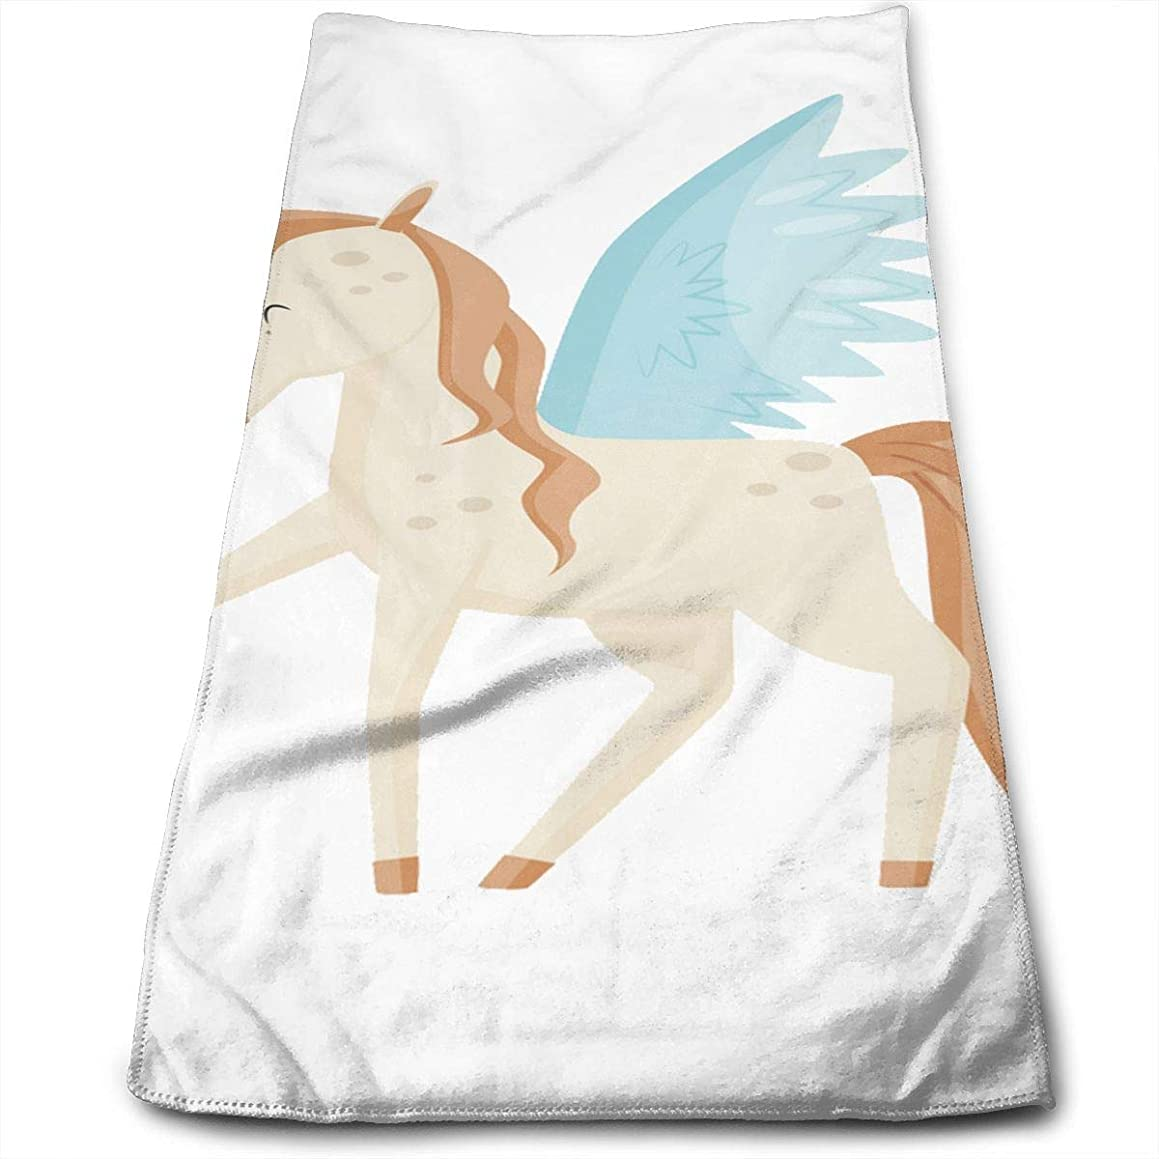 Yuzhuang Pegasus Winged Horse Mythical Creature Customized Facial Wash and Hair Care Absorbent Towel,Pool Gym Bathroom Super Soft Towels